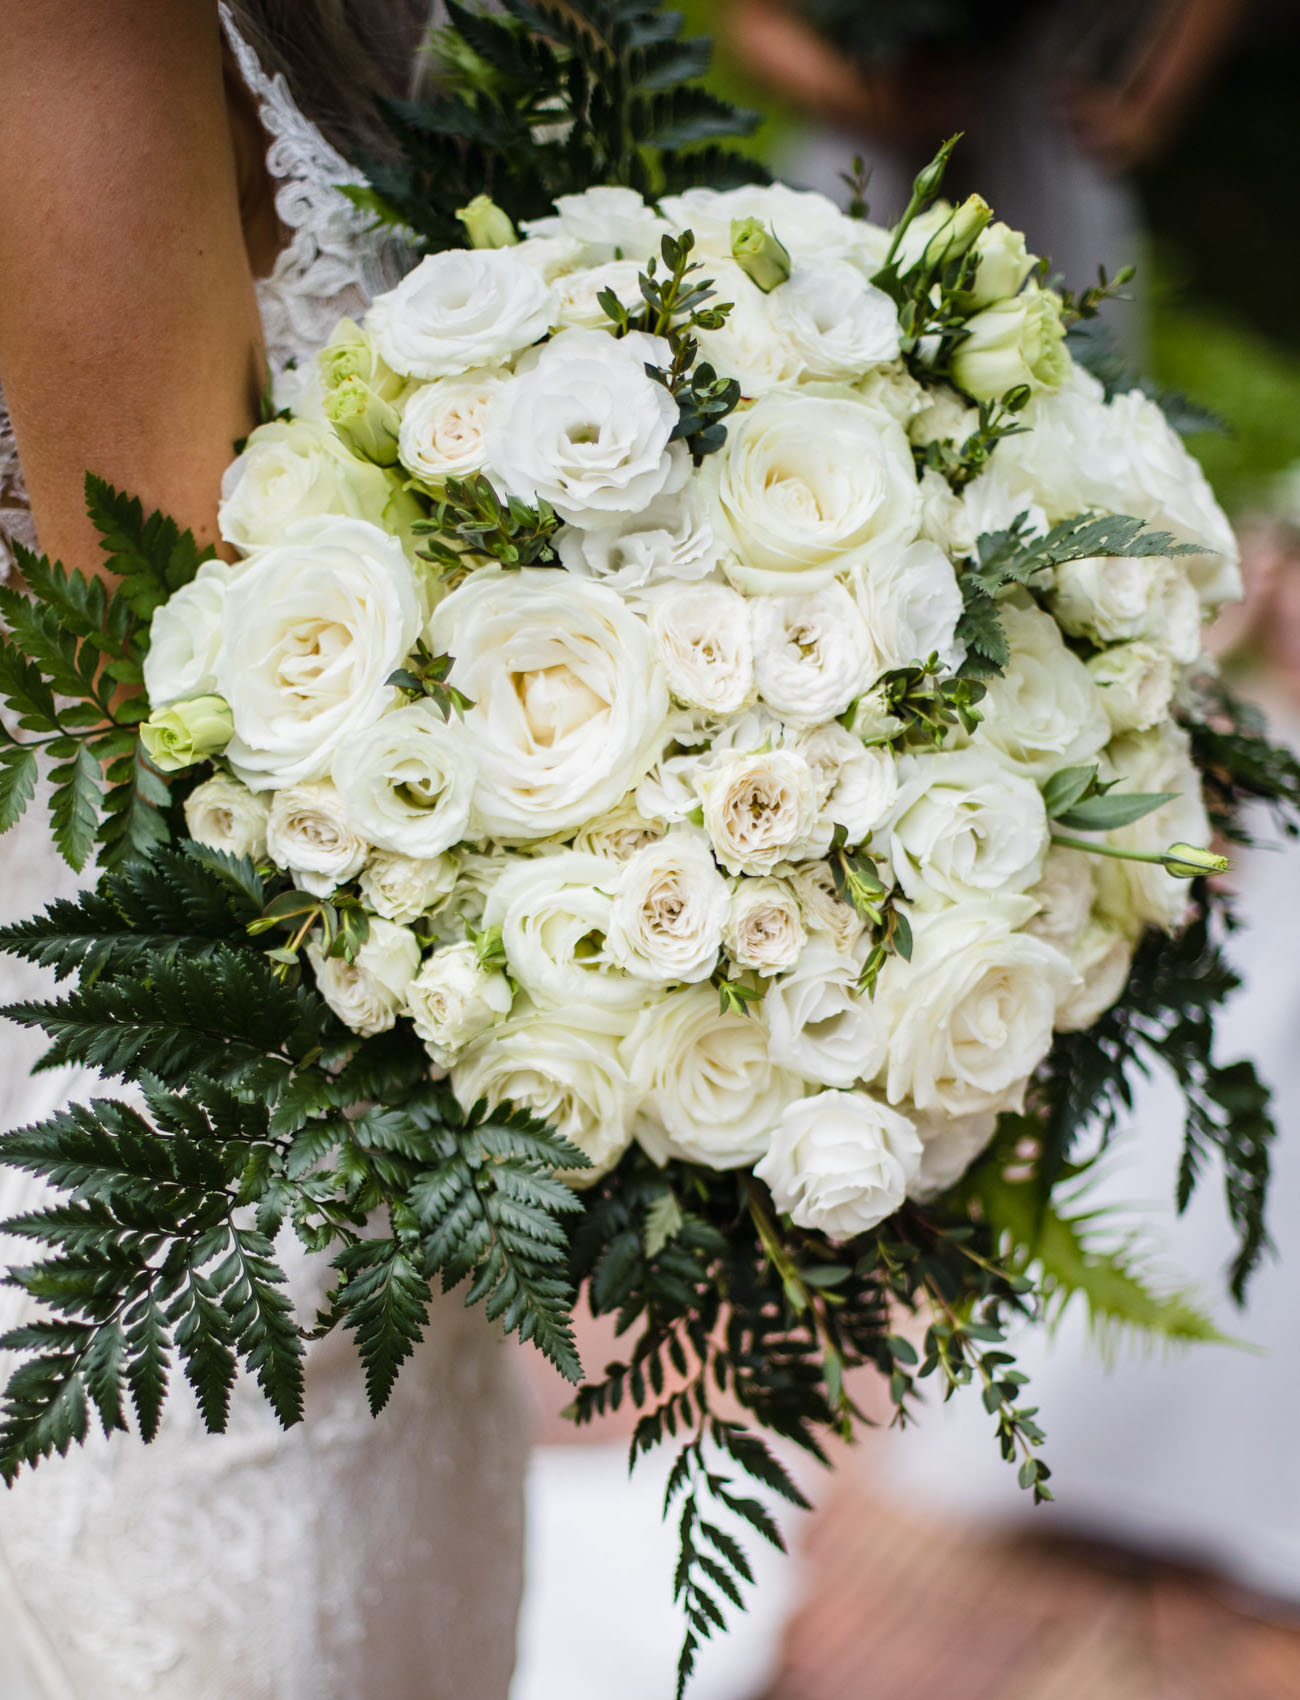 The bouquets were white and styled with greenery